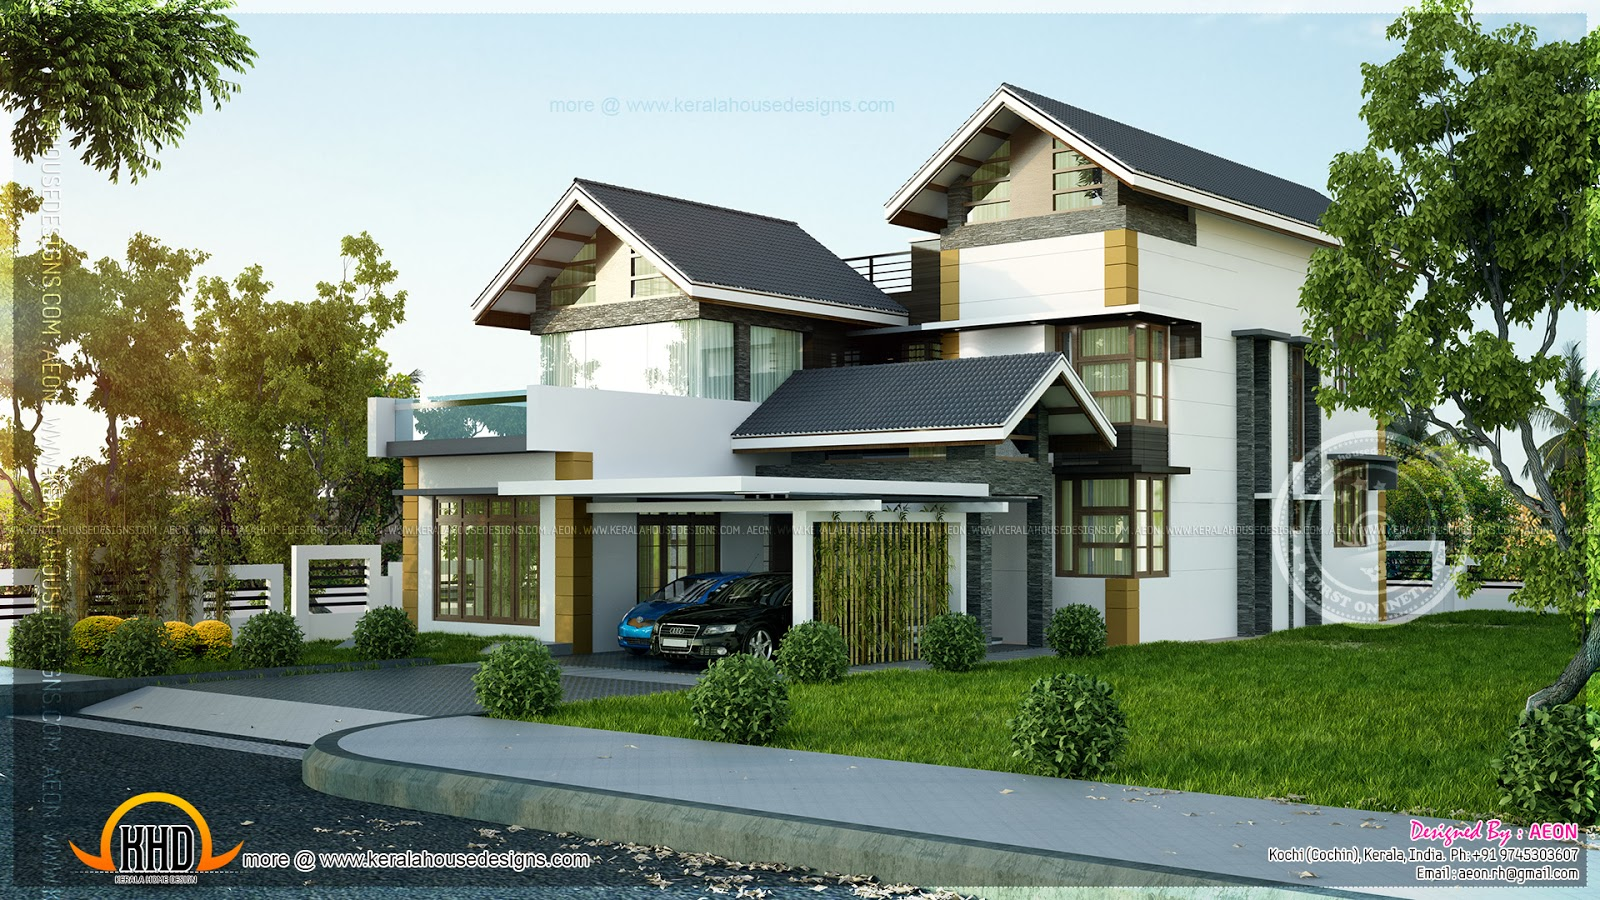 House plans and design modern house plans sloping land for Home designs on sloped land